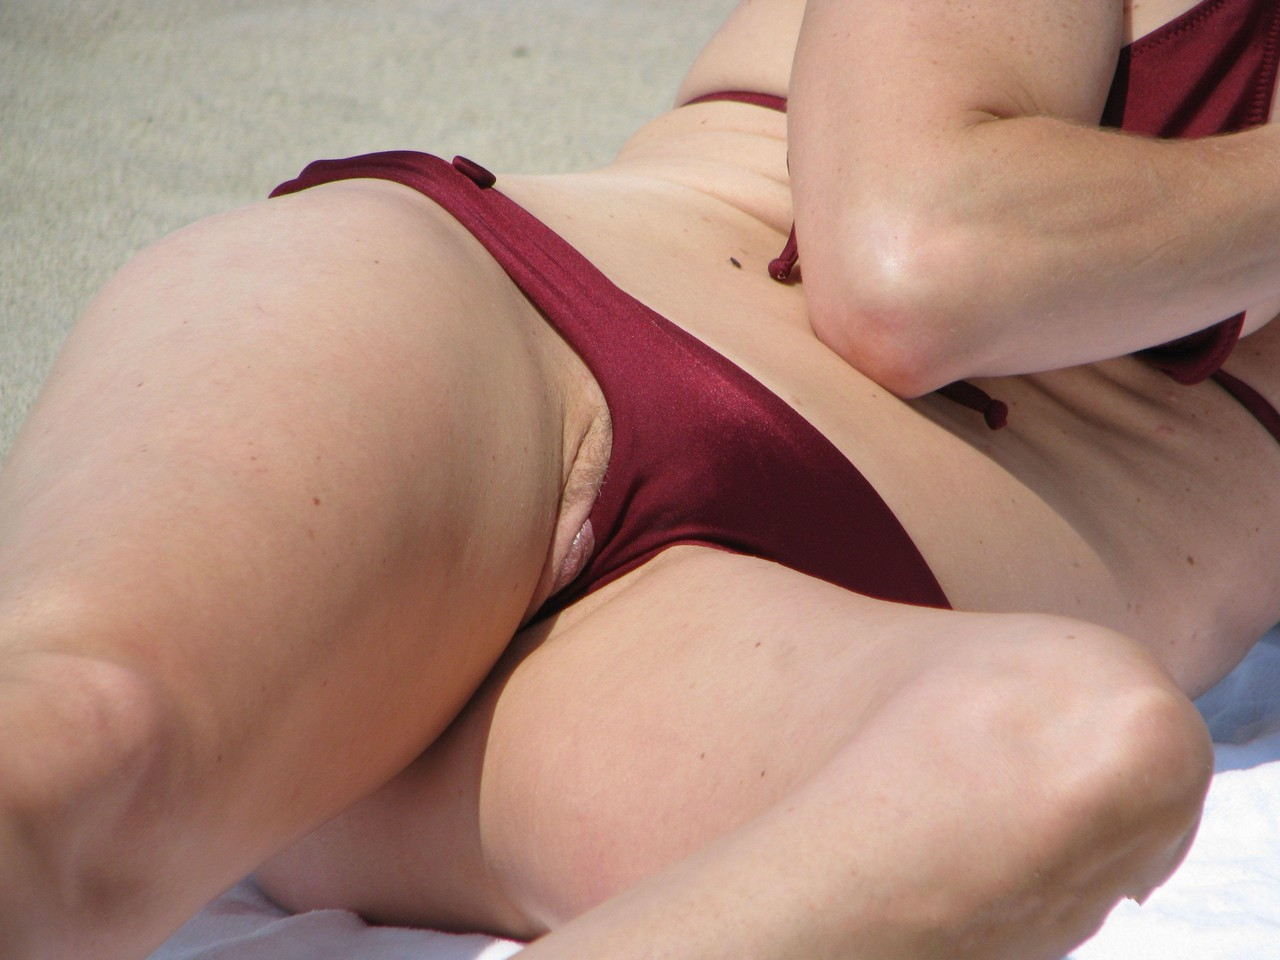 One the bikini voyeur upskirt